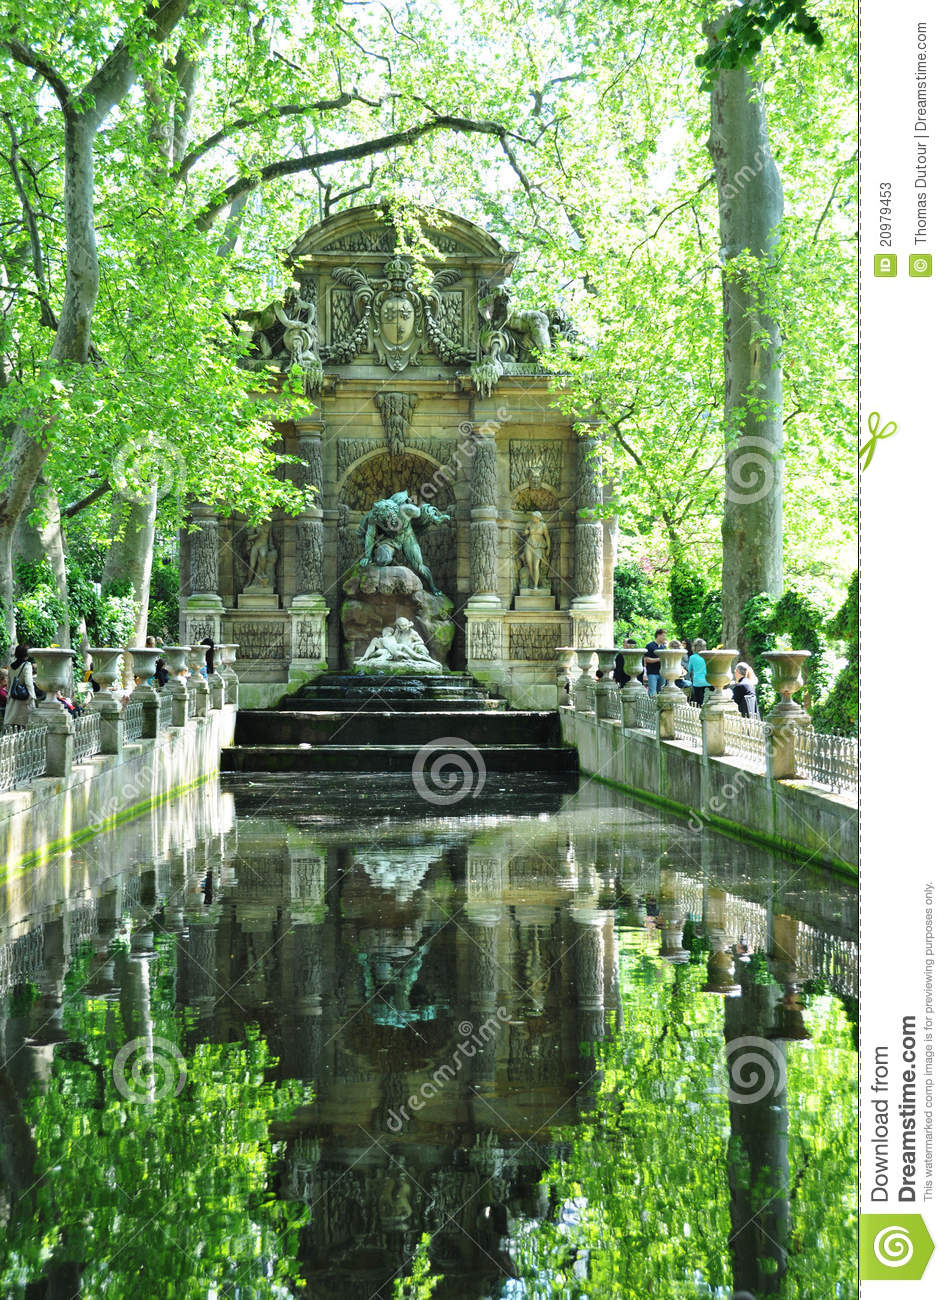 Fontaine de medicis au jardin du luxembourg paris photos for Au jardin paris